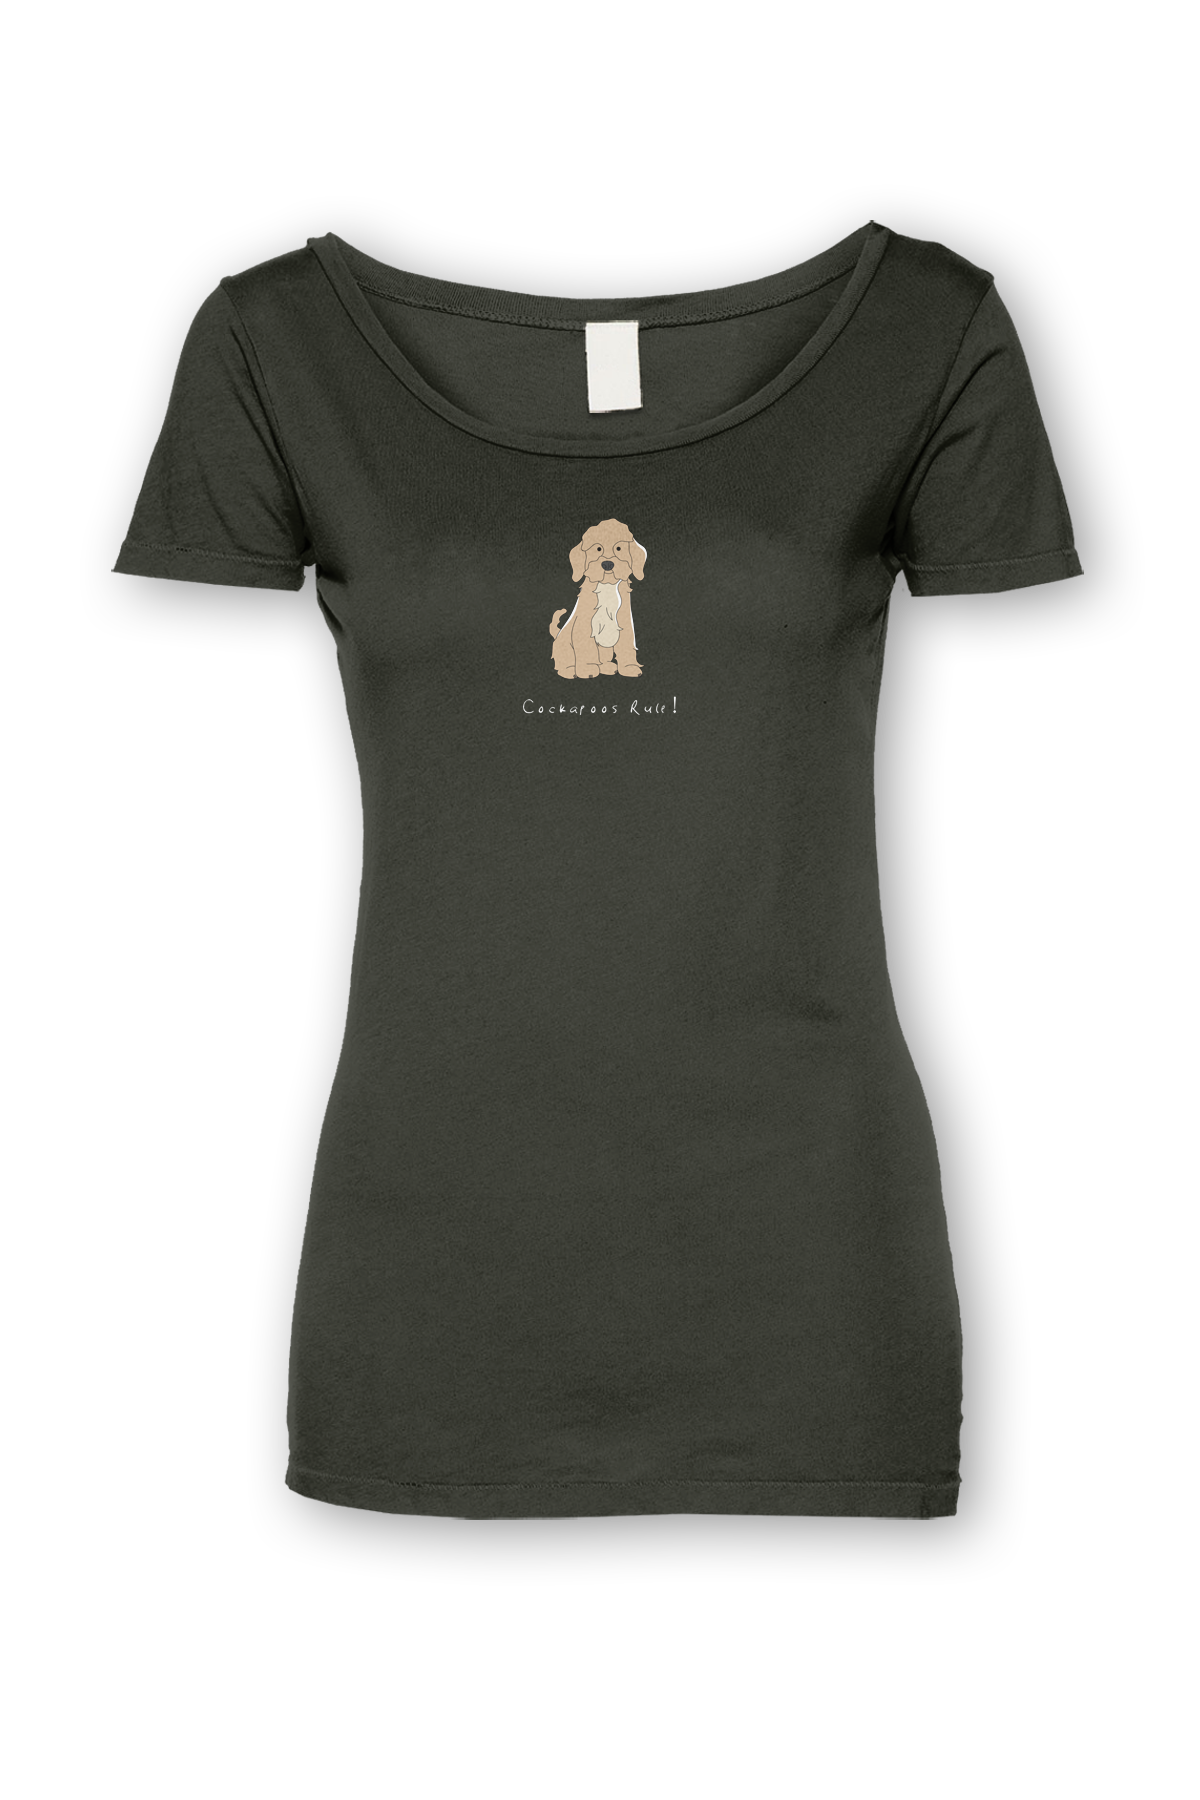 Ladies Sheer Scoop Neck T-Shirt - Cockerpoos Rule! Smoke